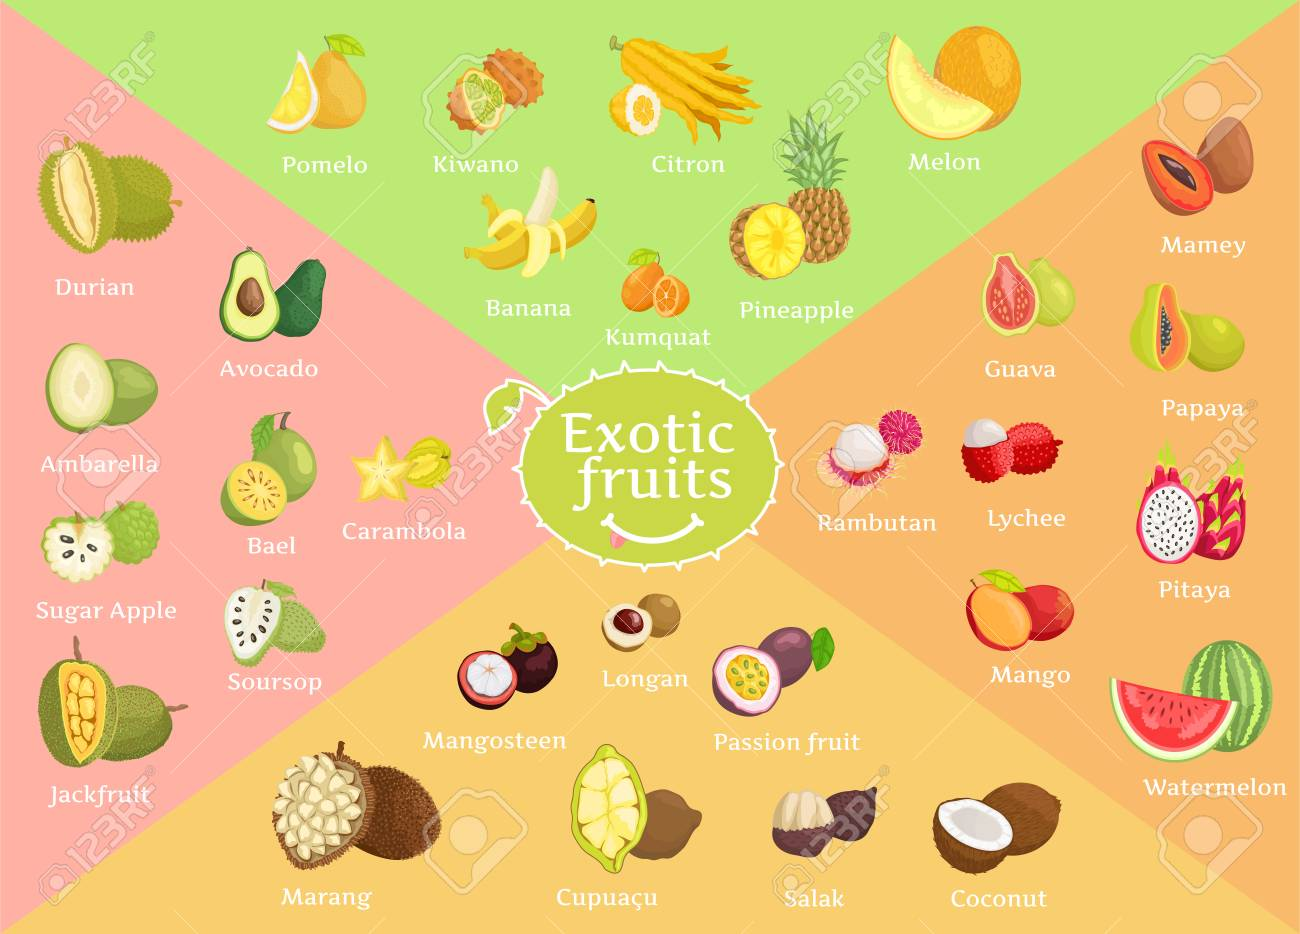 Exotic Fruits Collection Color Vector Illustration - 106315660